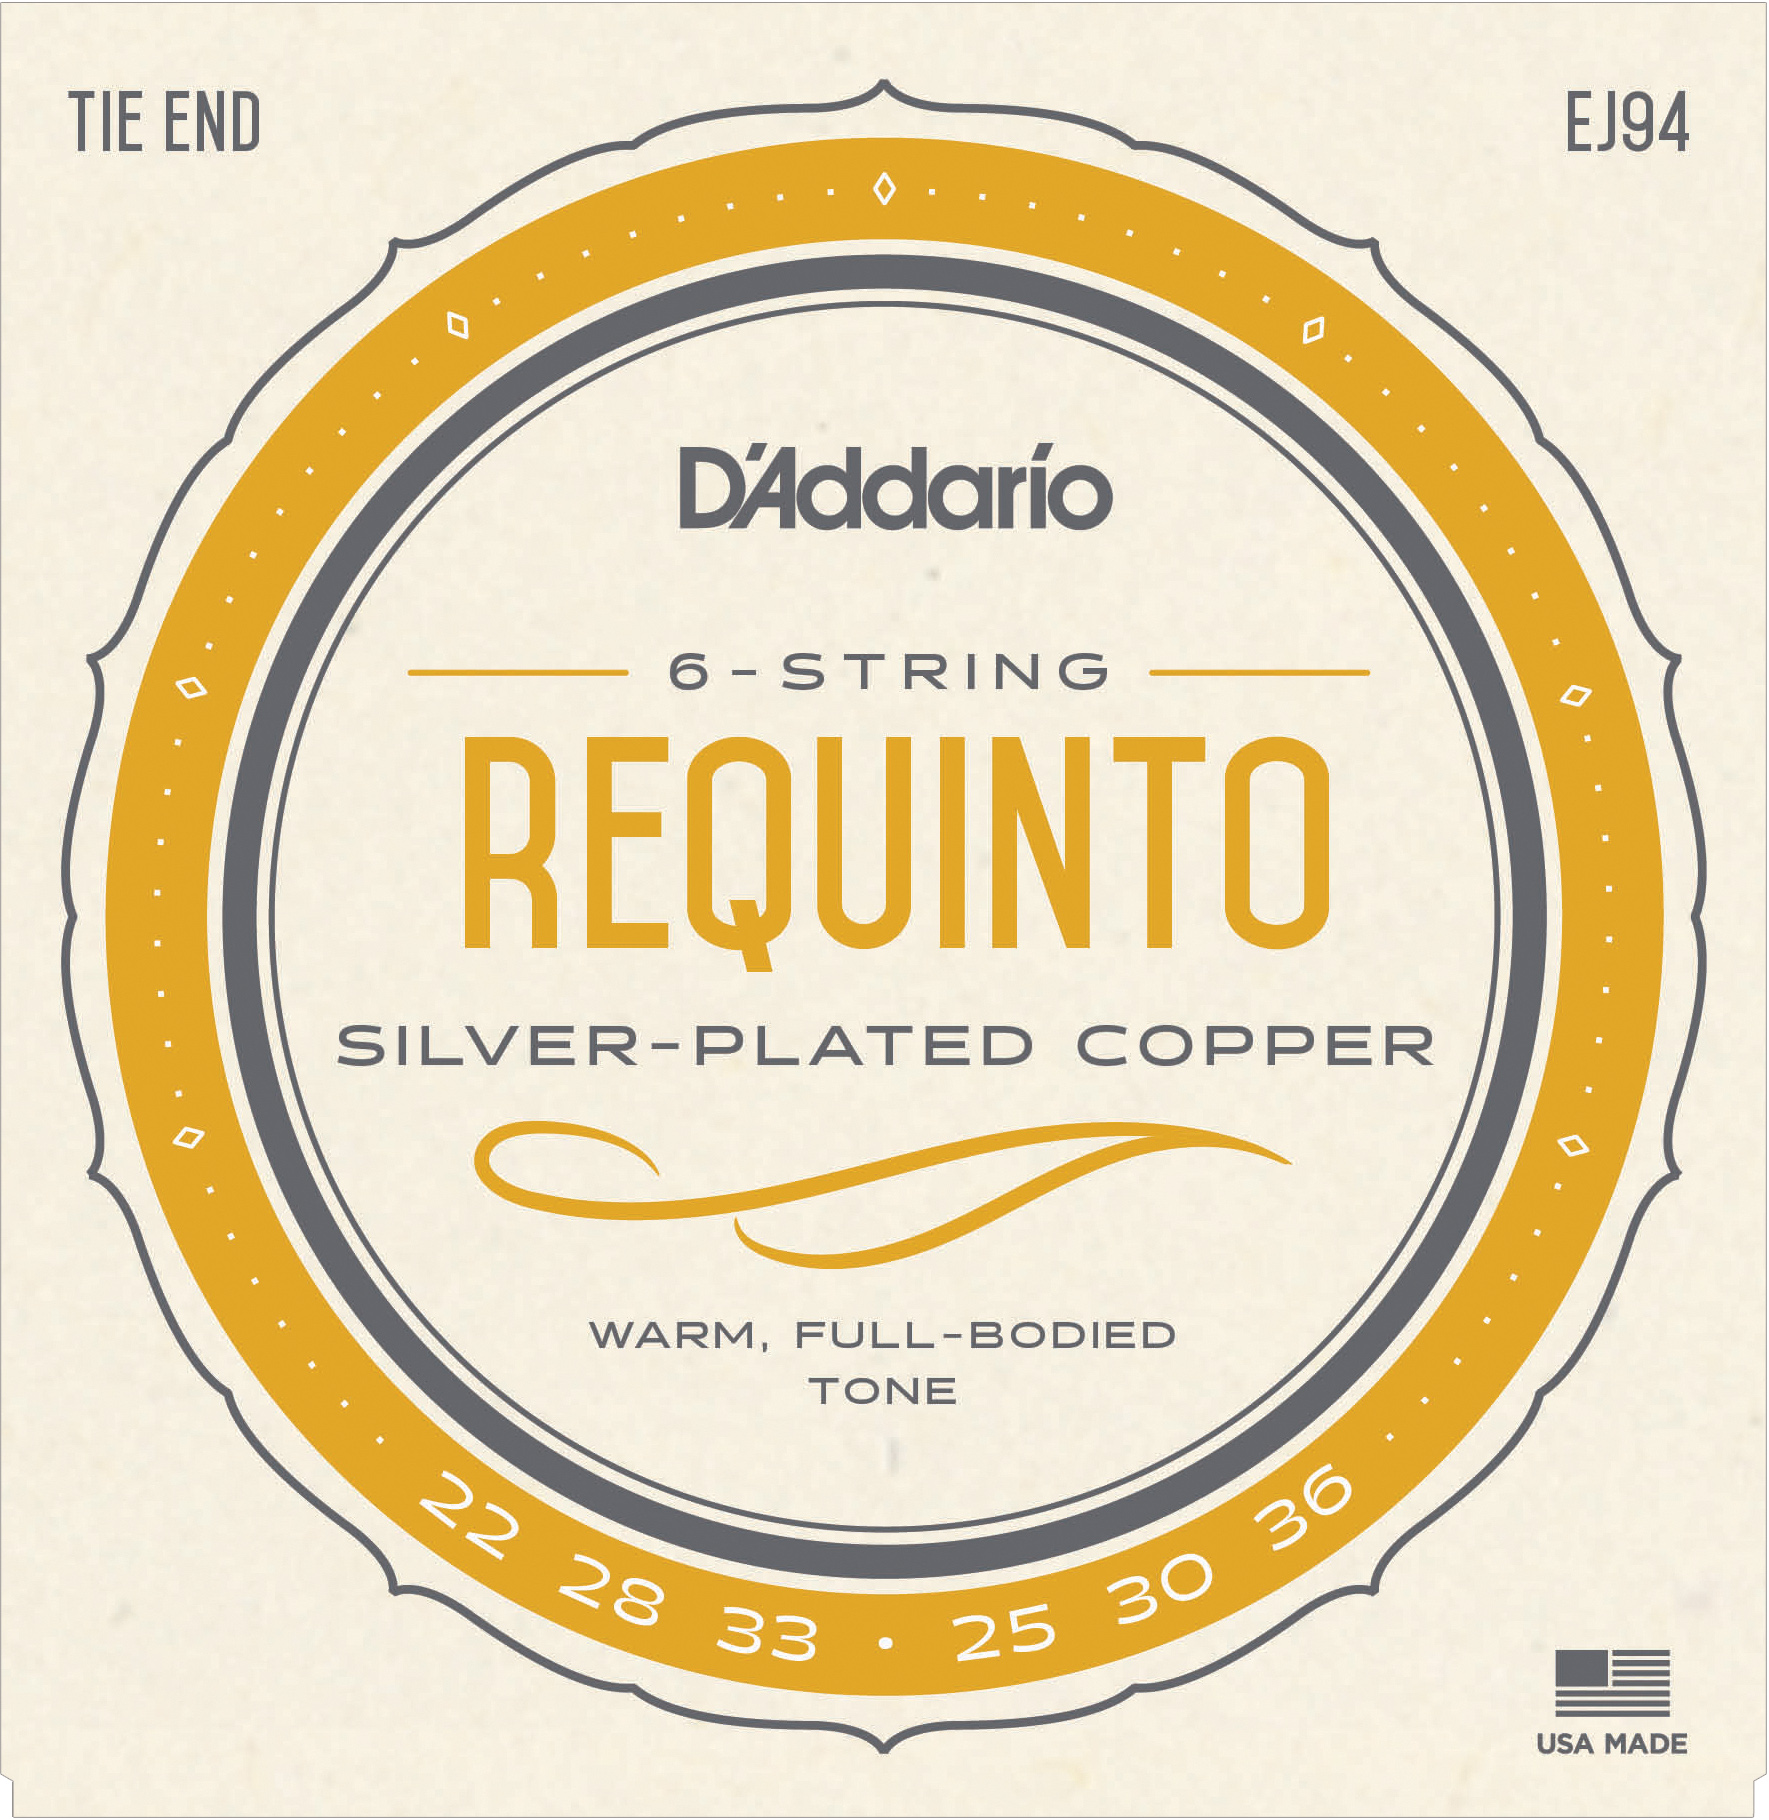 D'Addario Silverplated Copper Wound EJ94 Requinto Strings